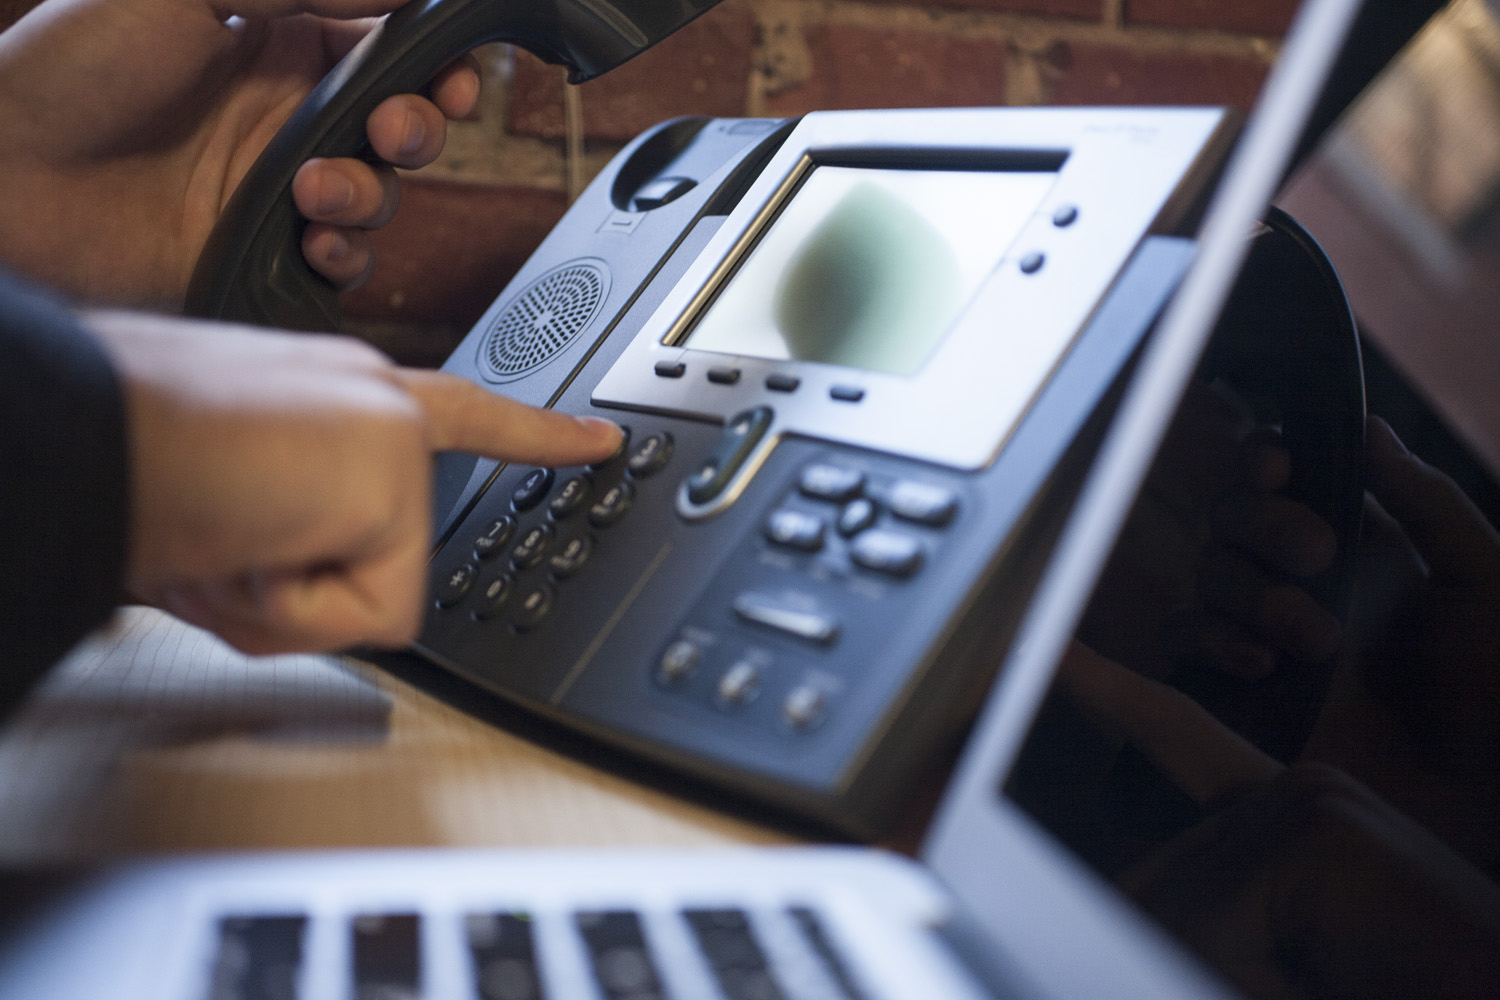 Reasons To Avail VoIP Phone Systems In The Business Sector